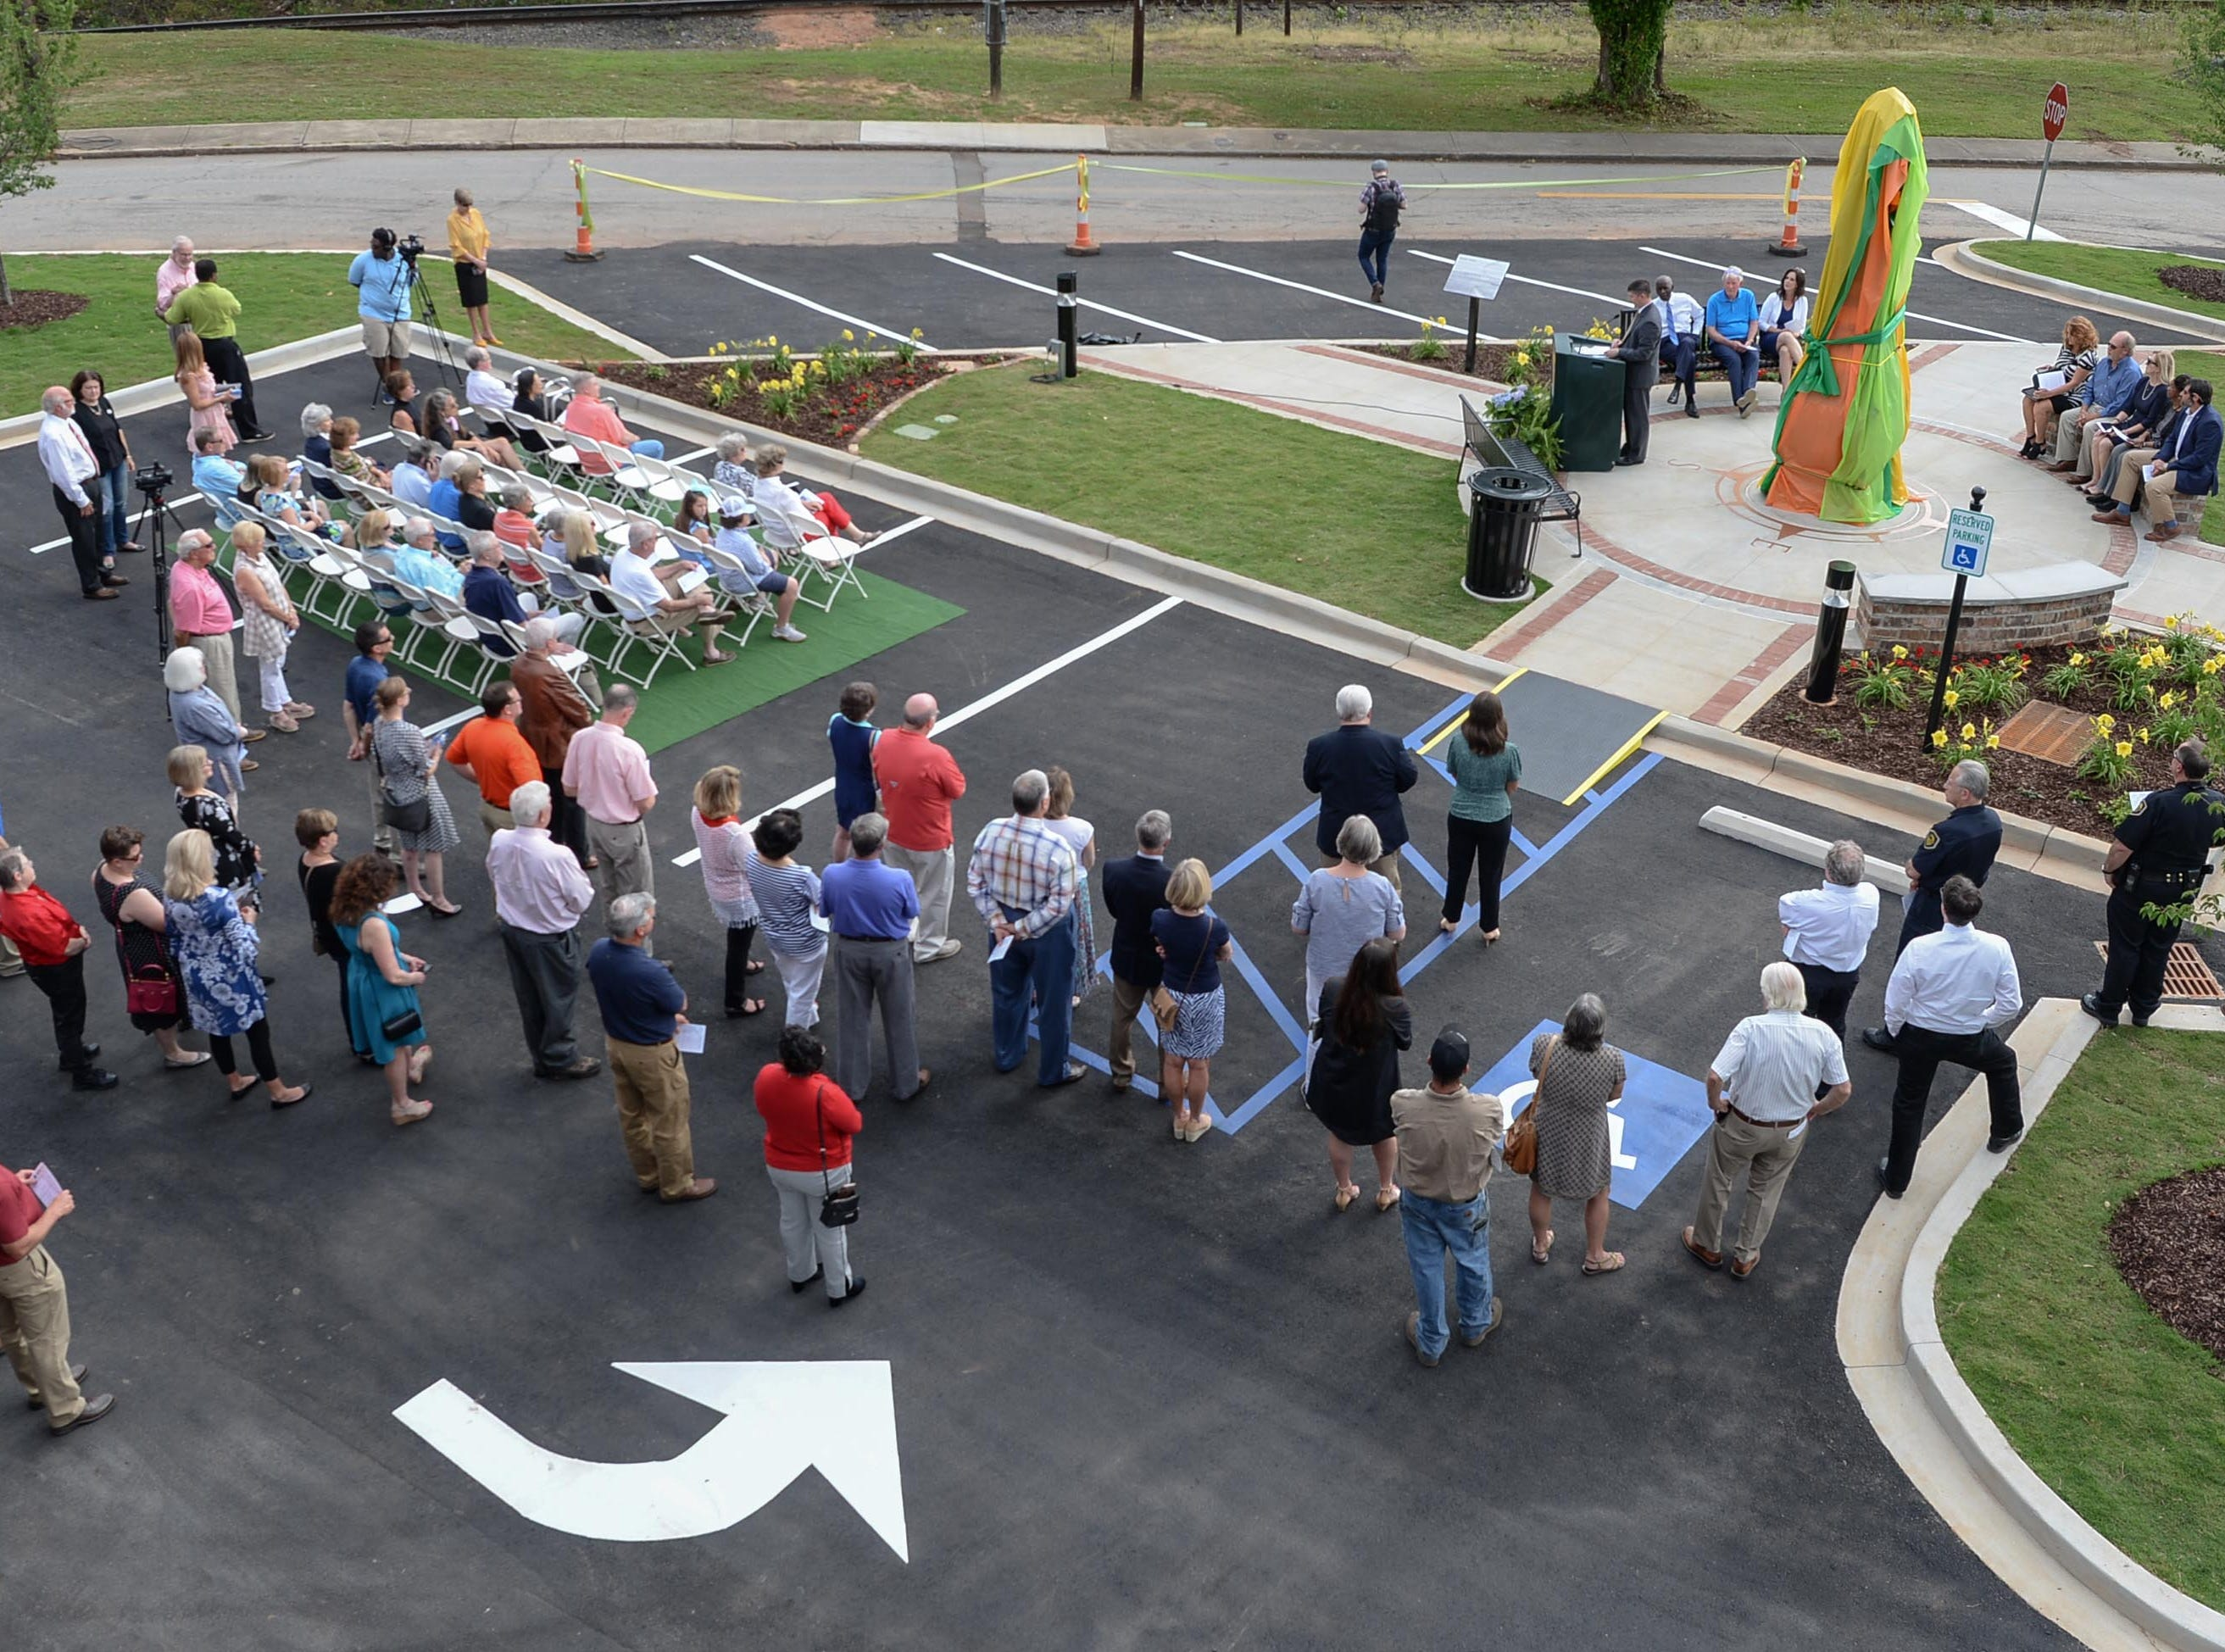 David McCuen, city manager, speaks before helping unveil the Under the bridge project called Textile Point in downtown Anderson Thursday, May 9, 2019. Scott Foster of Anderson designed the monument honoring years of textile mills in Anderson, with support partners from To Benefit Anderson, South Carolina Heritage Corridor, the Rotary Club of Anderson, and the City of Anderson.